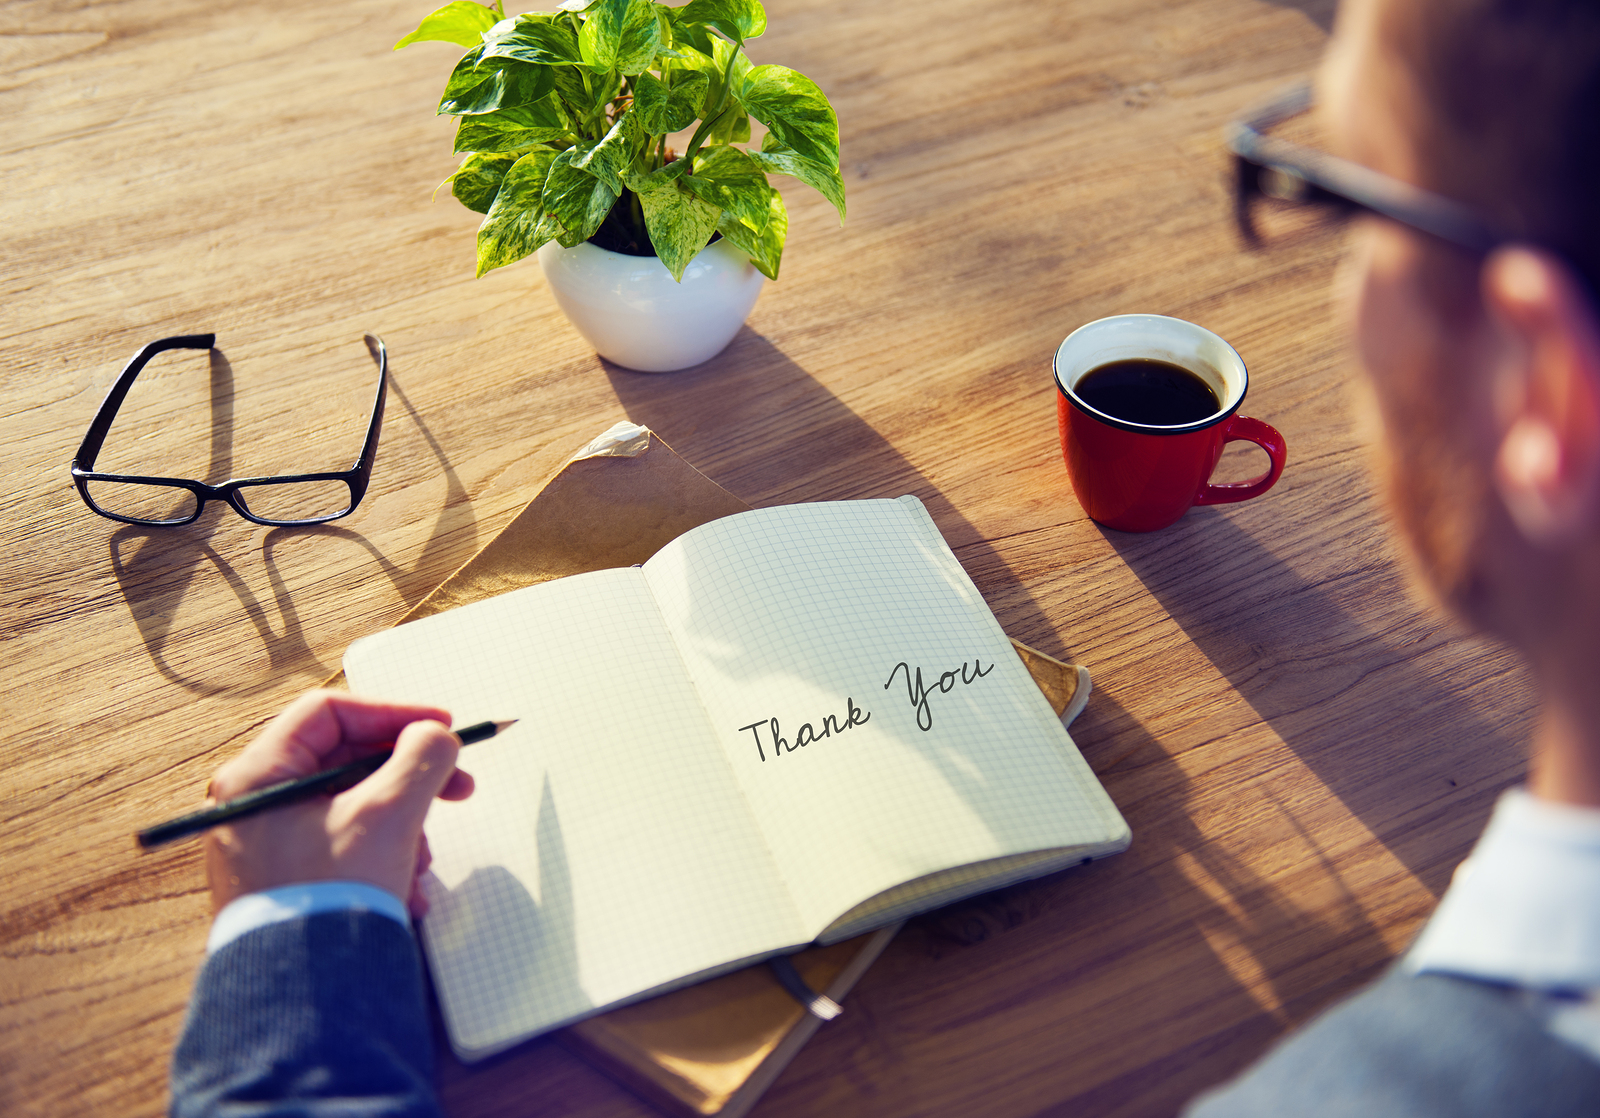 3 ways to show your gratitude at work this new year